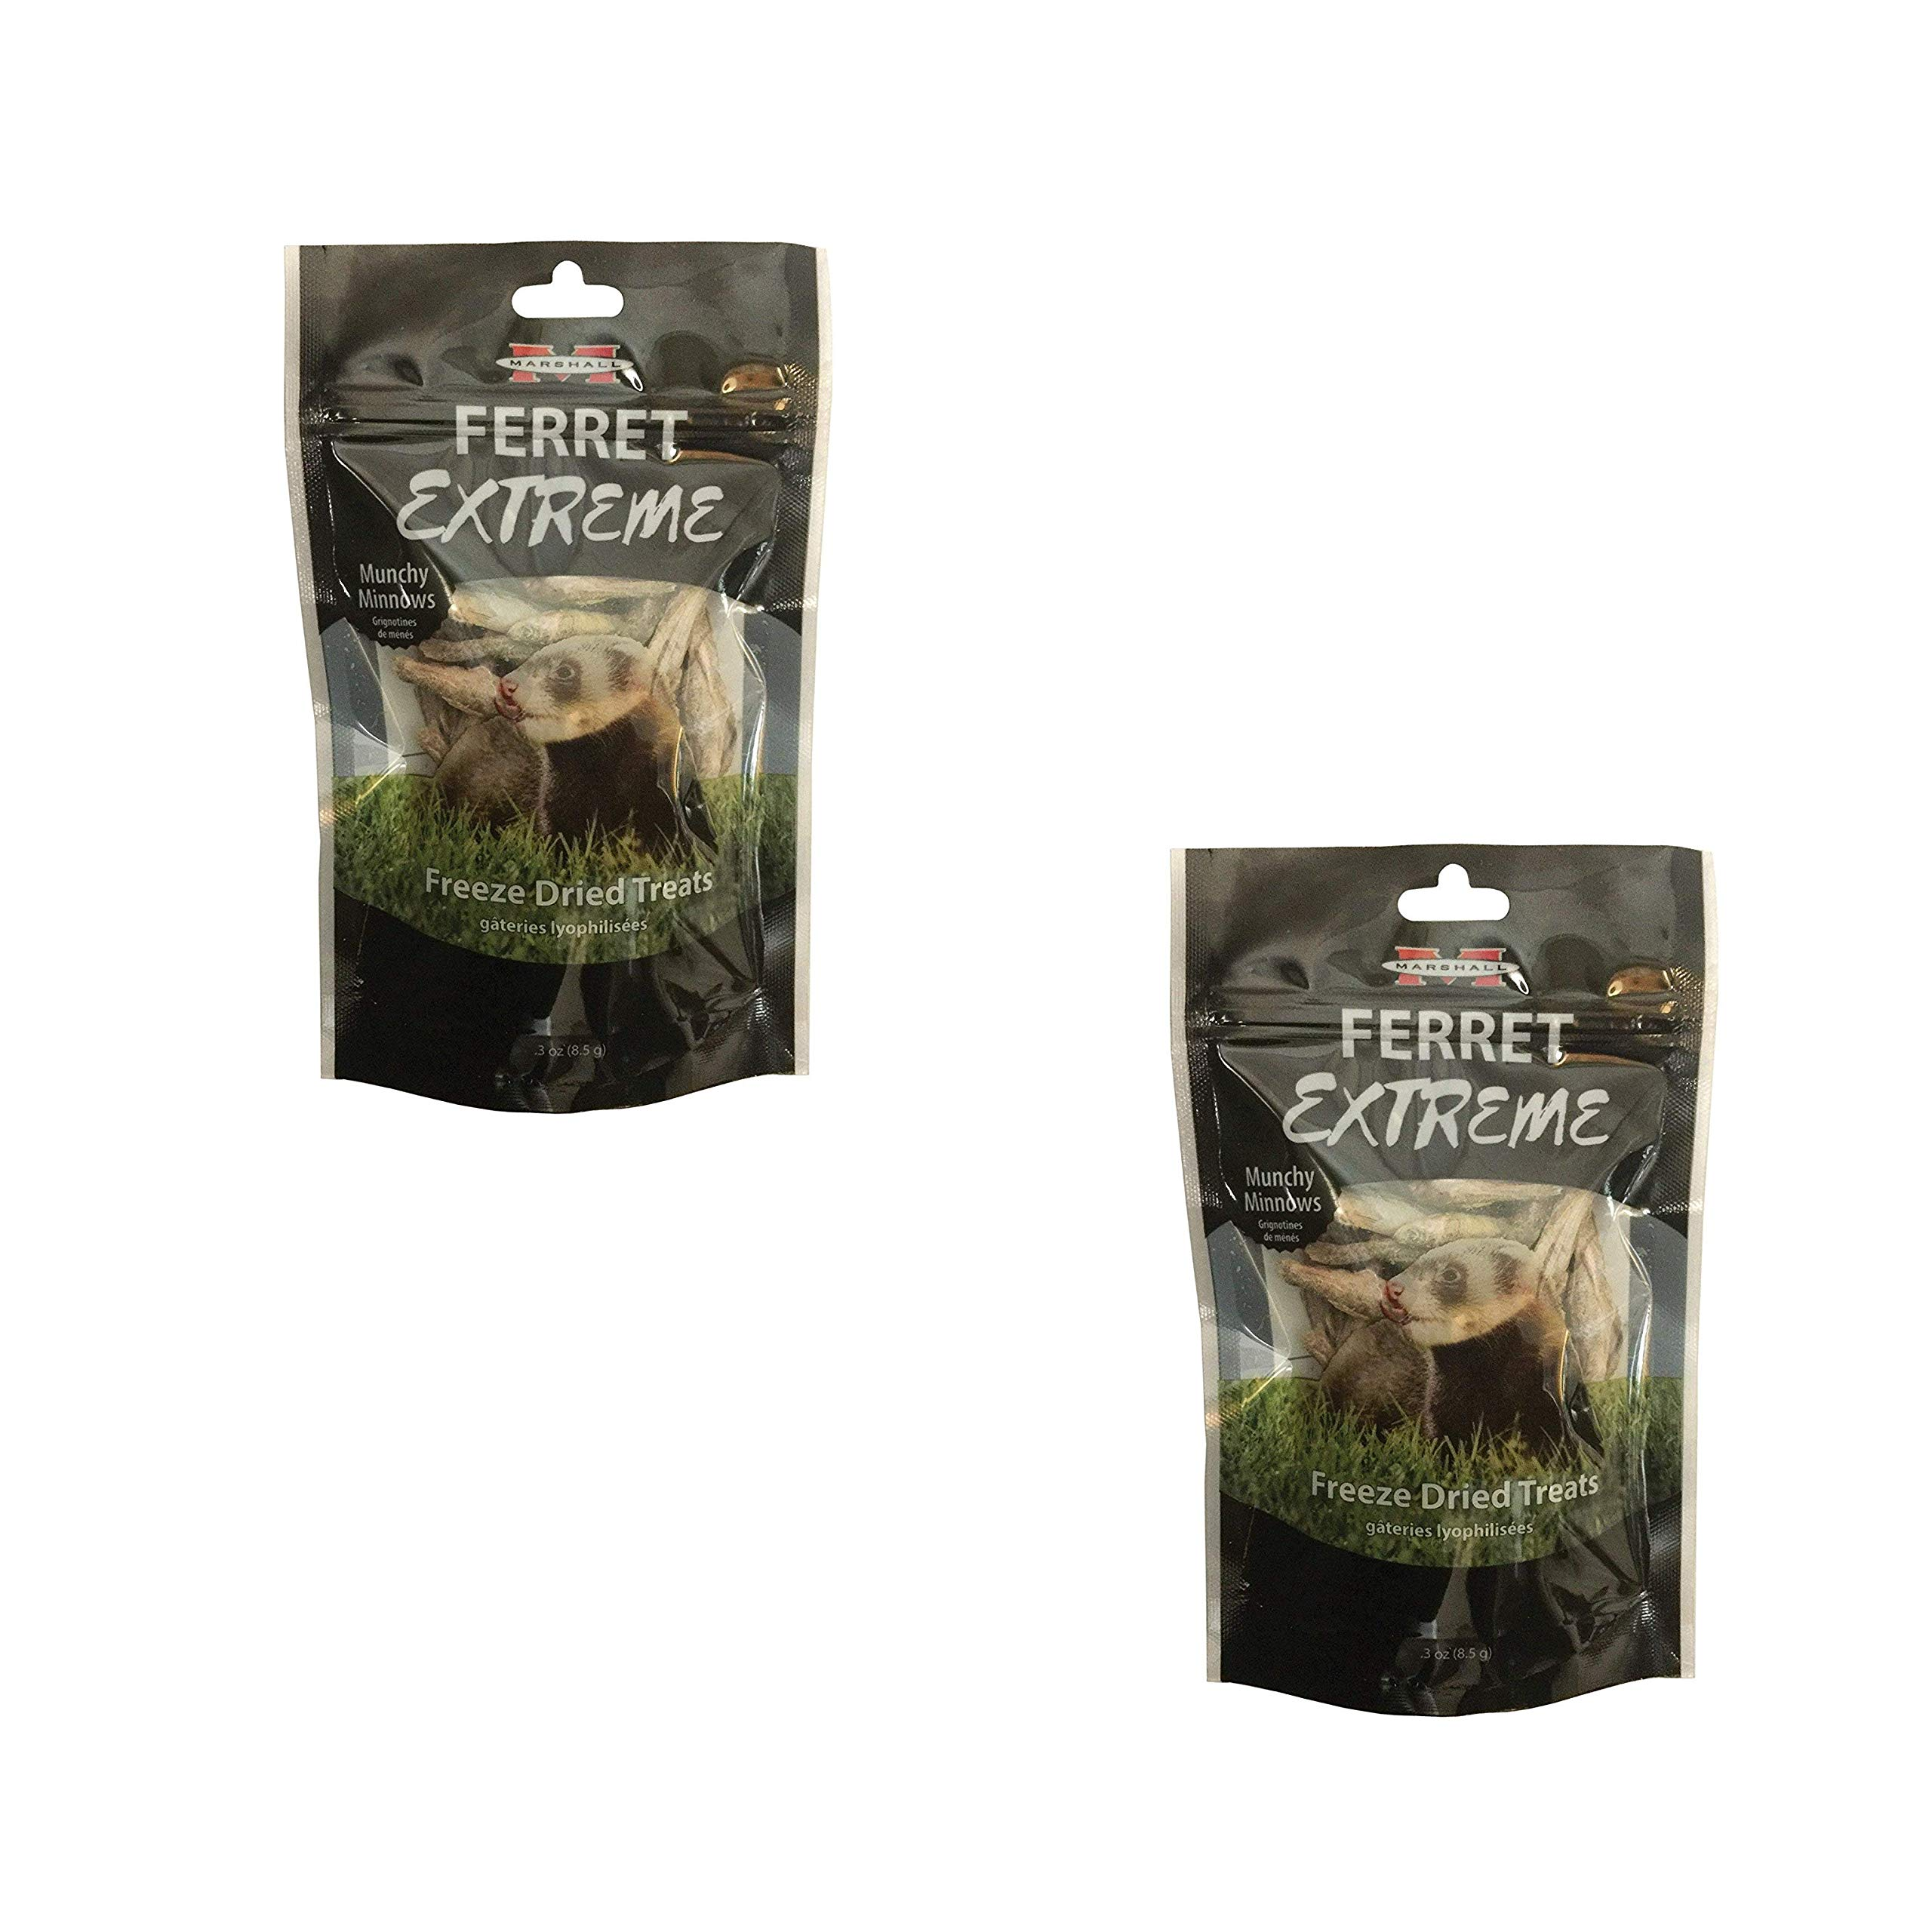 Marshall Pet Products Ferret Extreme Freeze Dried Munchy Minnows (2 Pack)